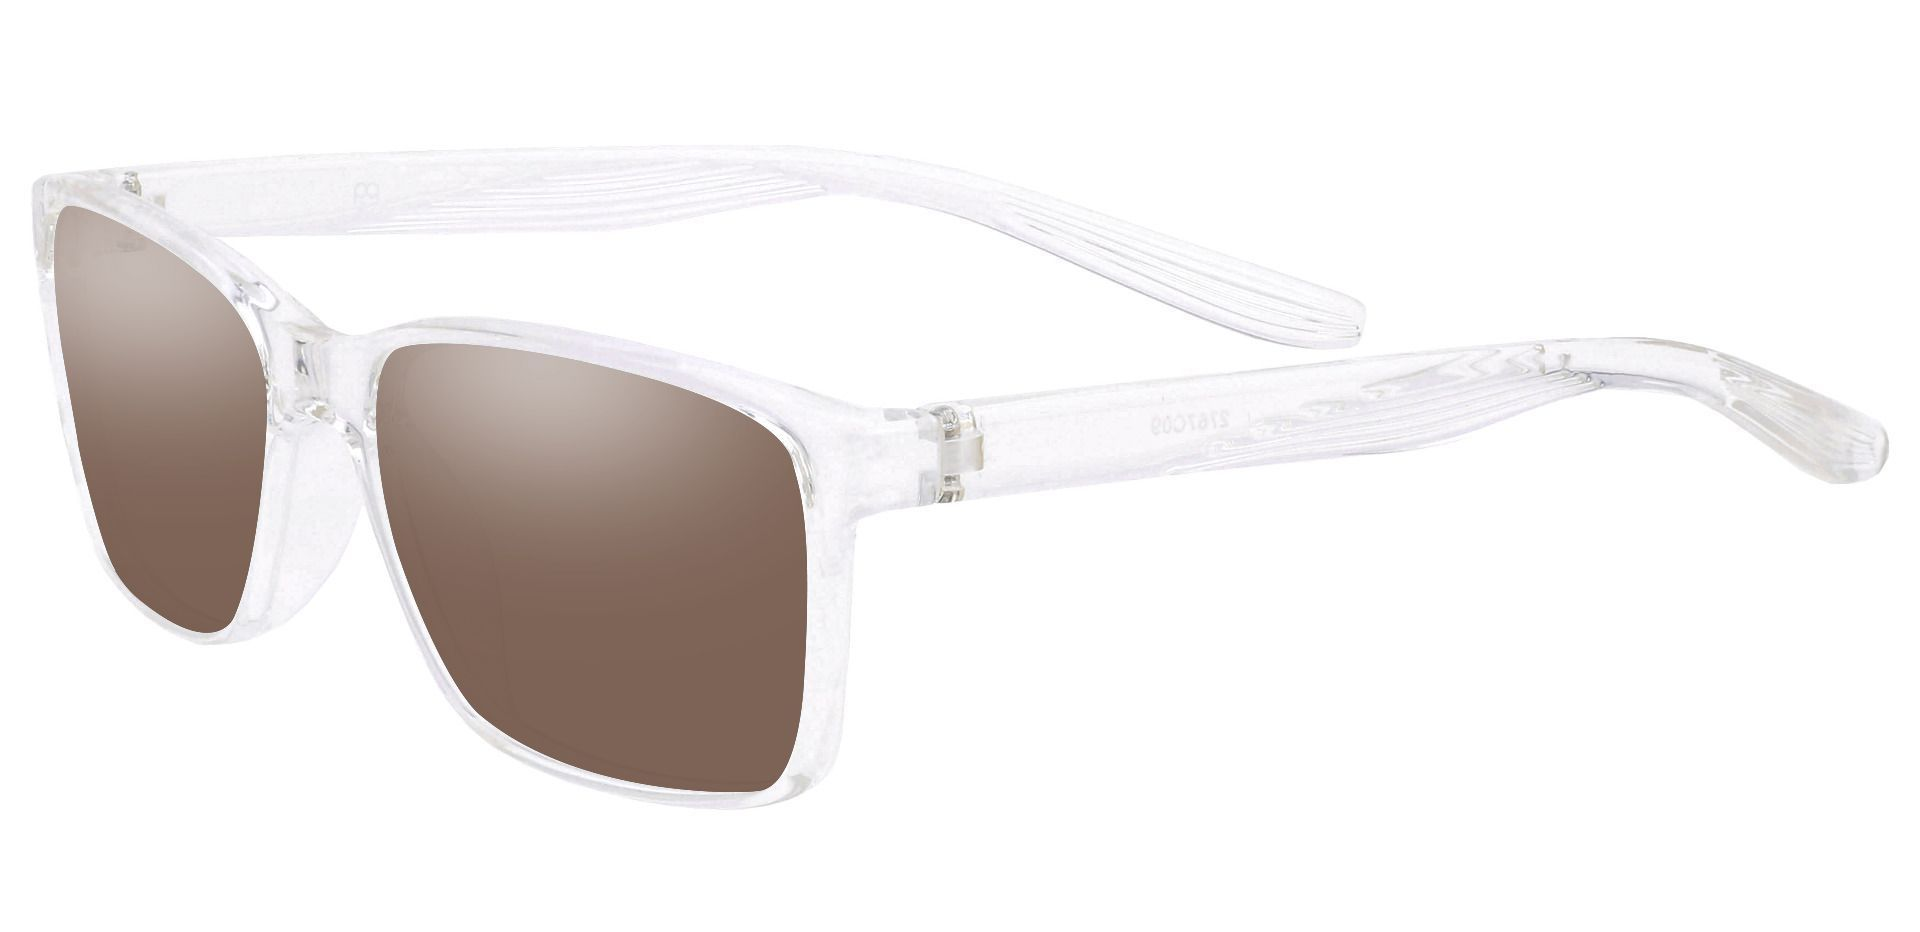 Berlin Rectangle Prescription Sunglasses -  Clear Frame With Brown Lenses